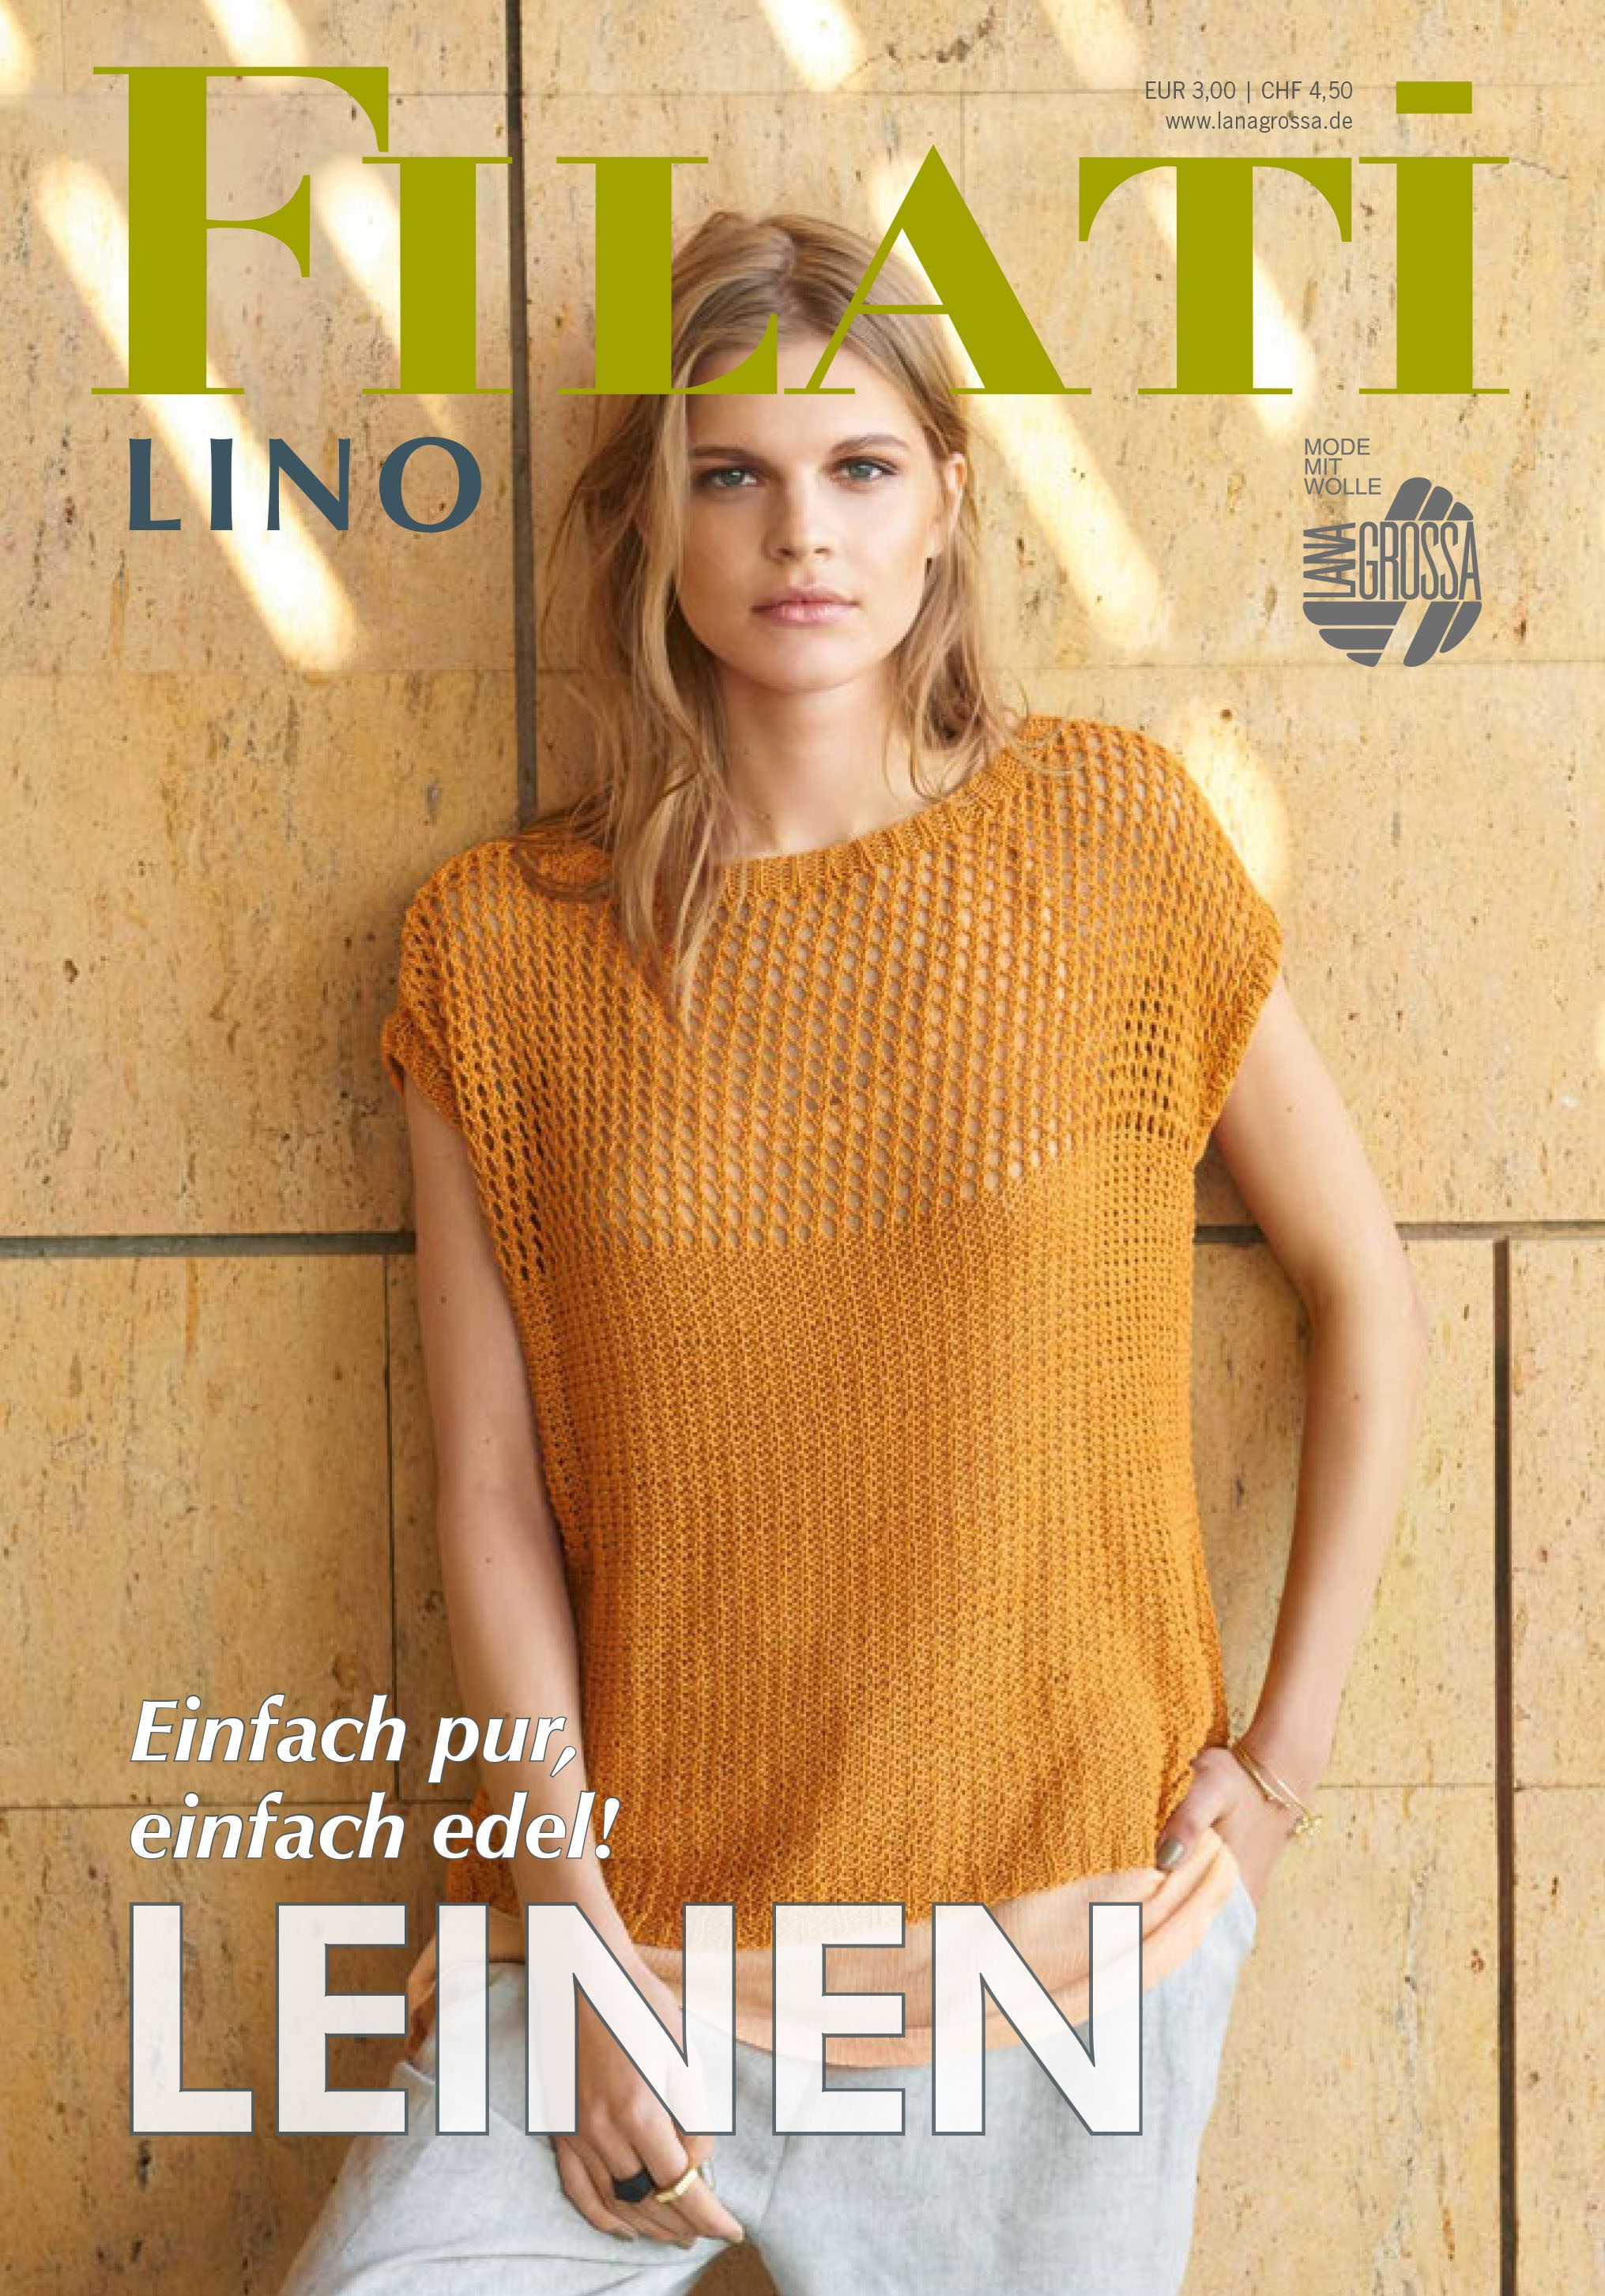 Lana Grossa FILATI Lino No. 1 - Magazine (DE) + Knitting instructions (EN)